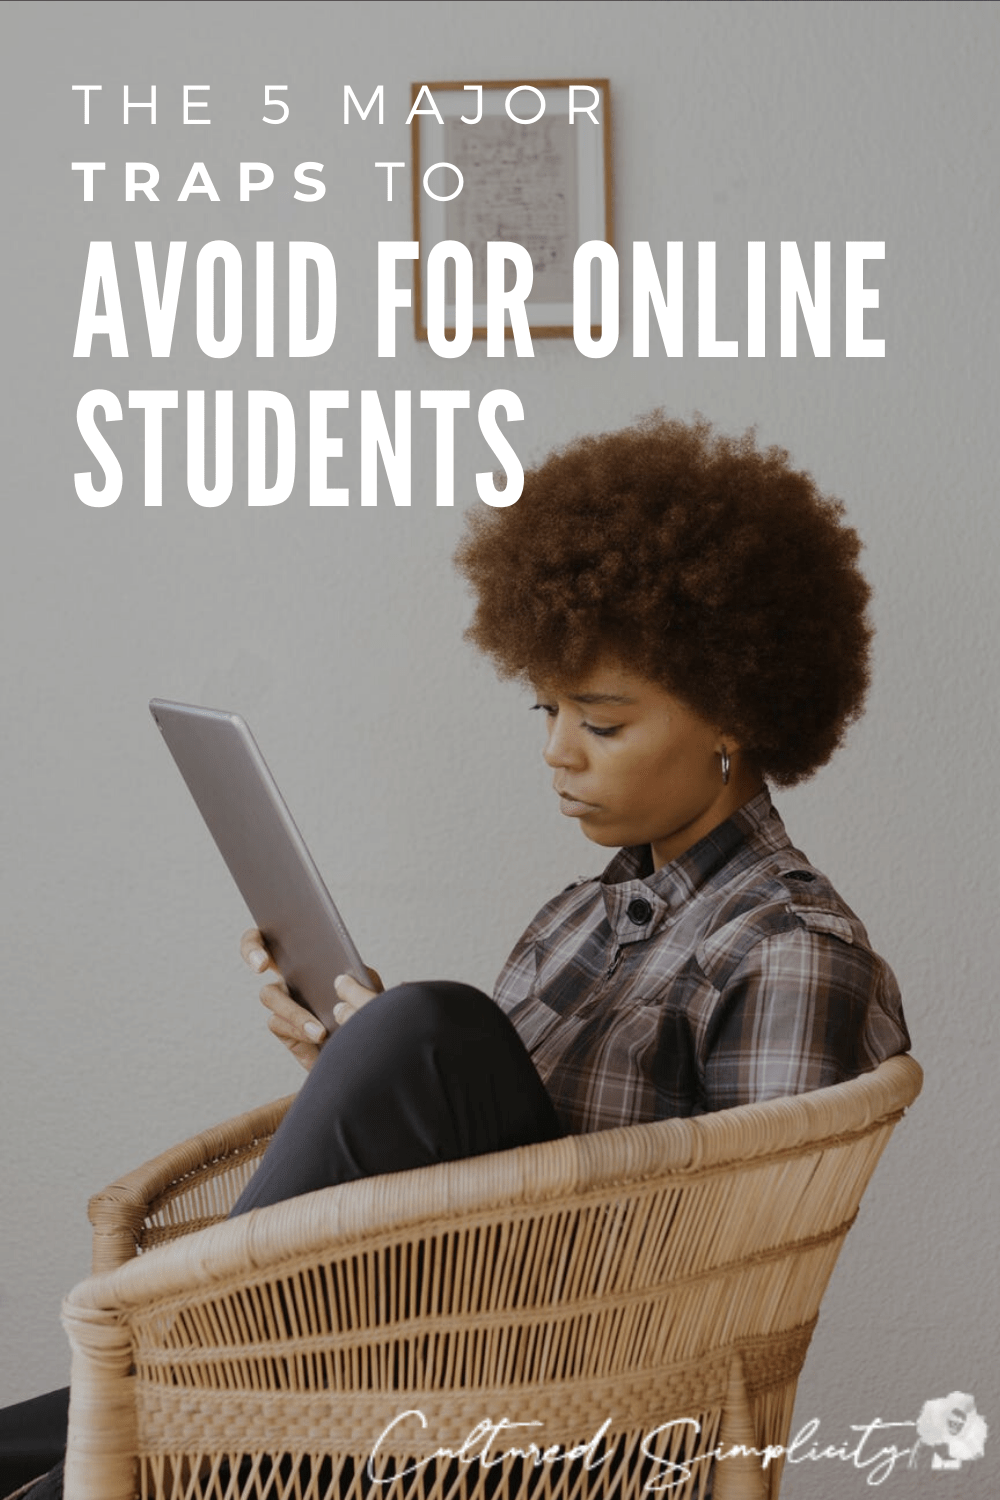 The 5 Major Traps to Avoid as an Online Student